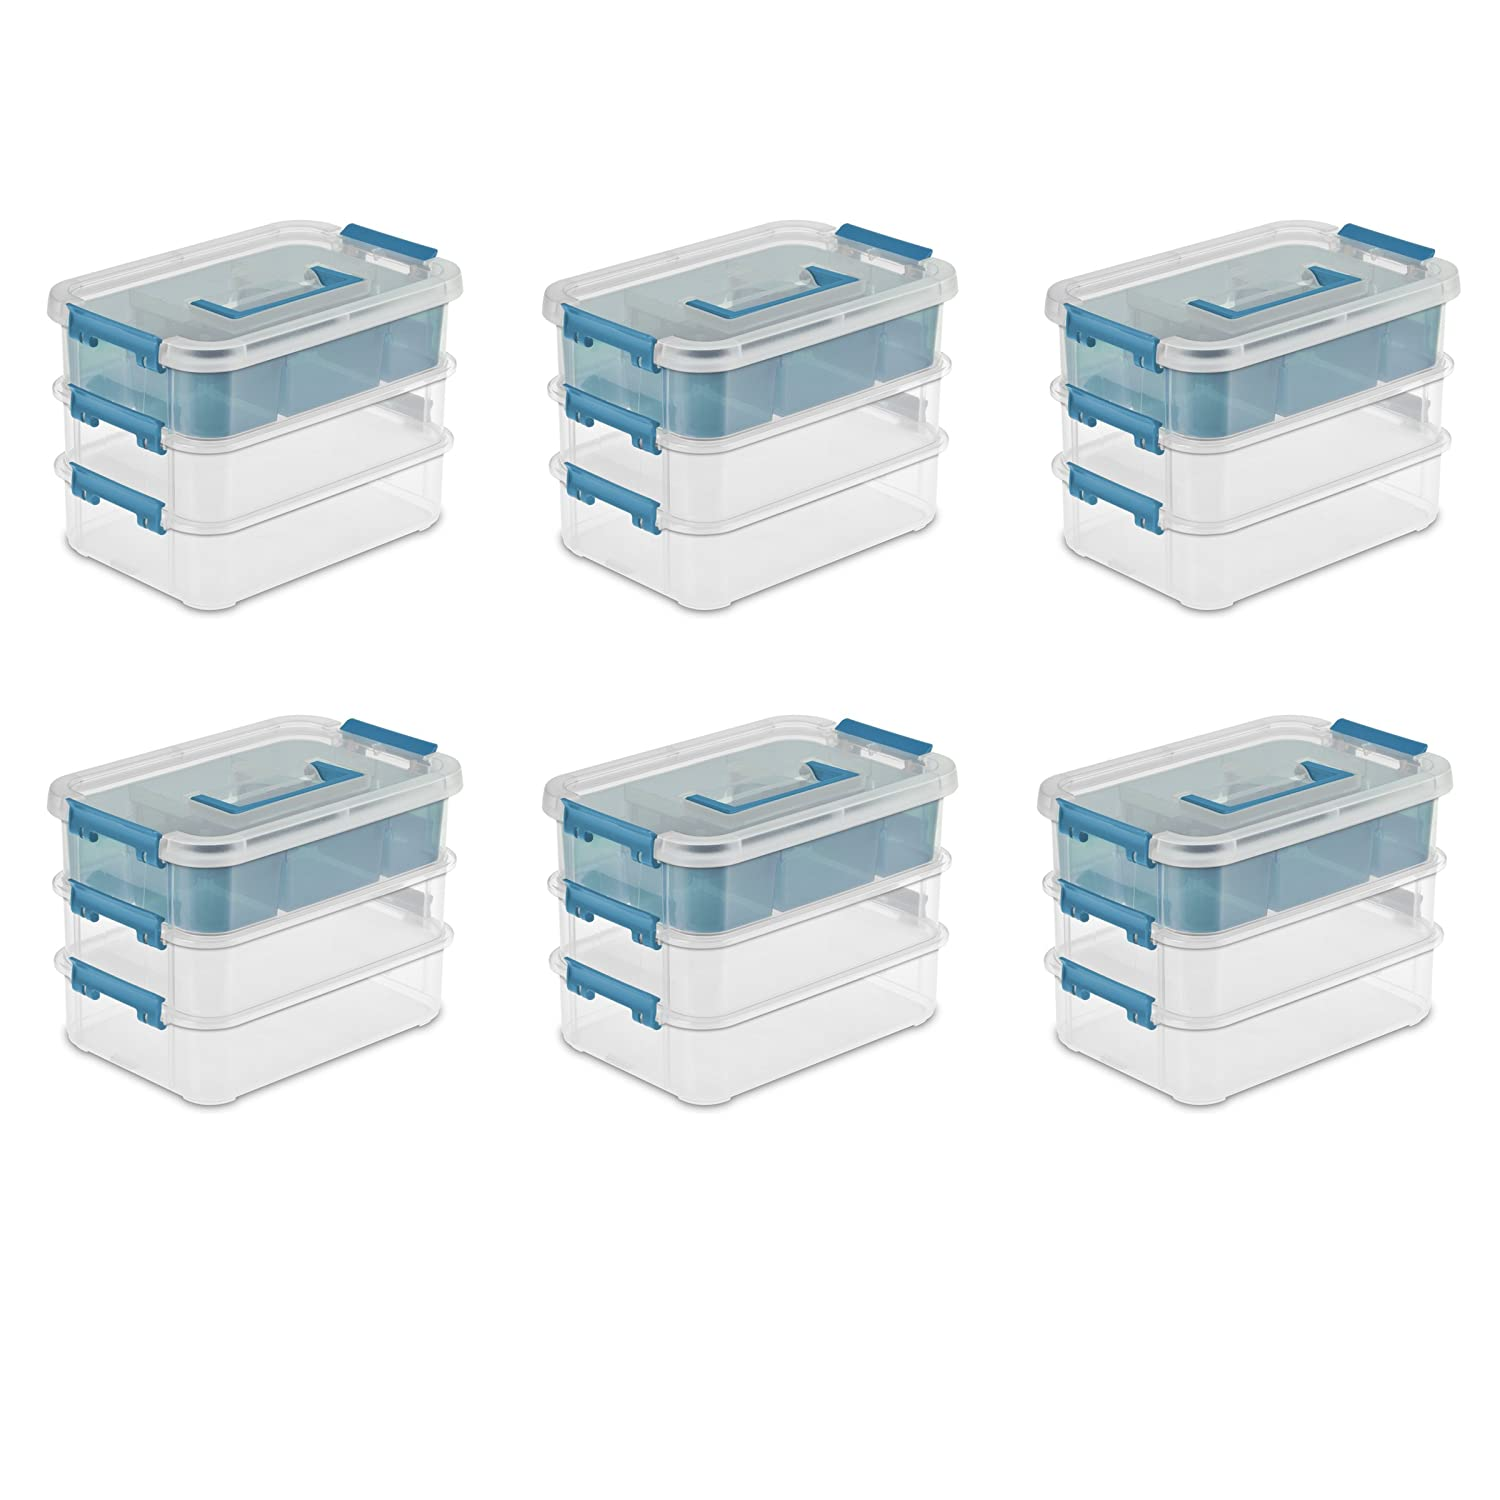 Sterilite 14138606 Stack & Carry 3 Layer Handle Box & Tray, Clear Base w/ Colored Handle, Latches and Tint Tray, 6-Pack